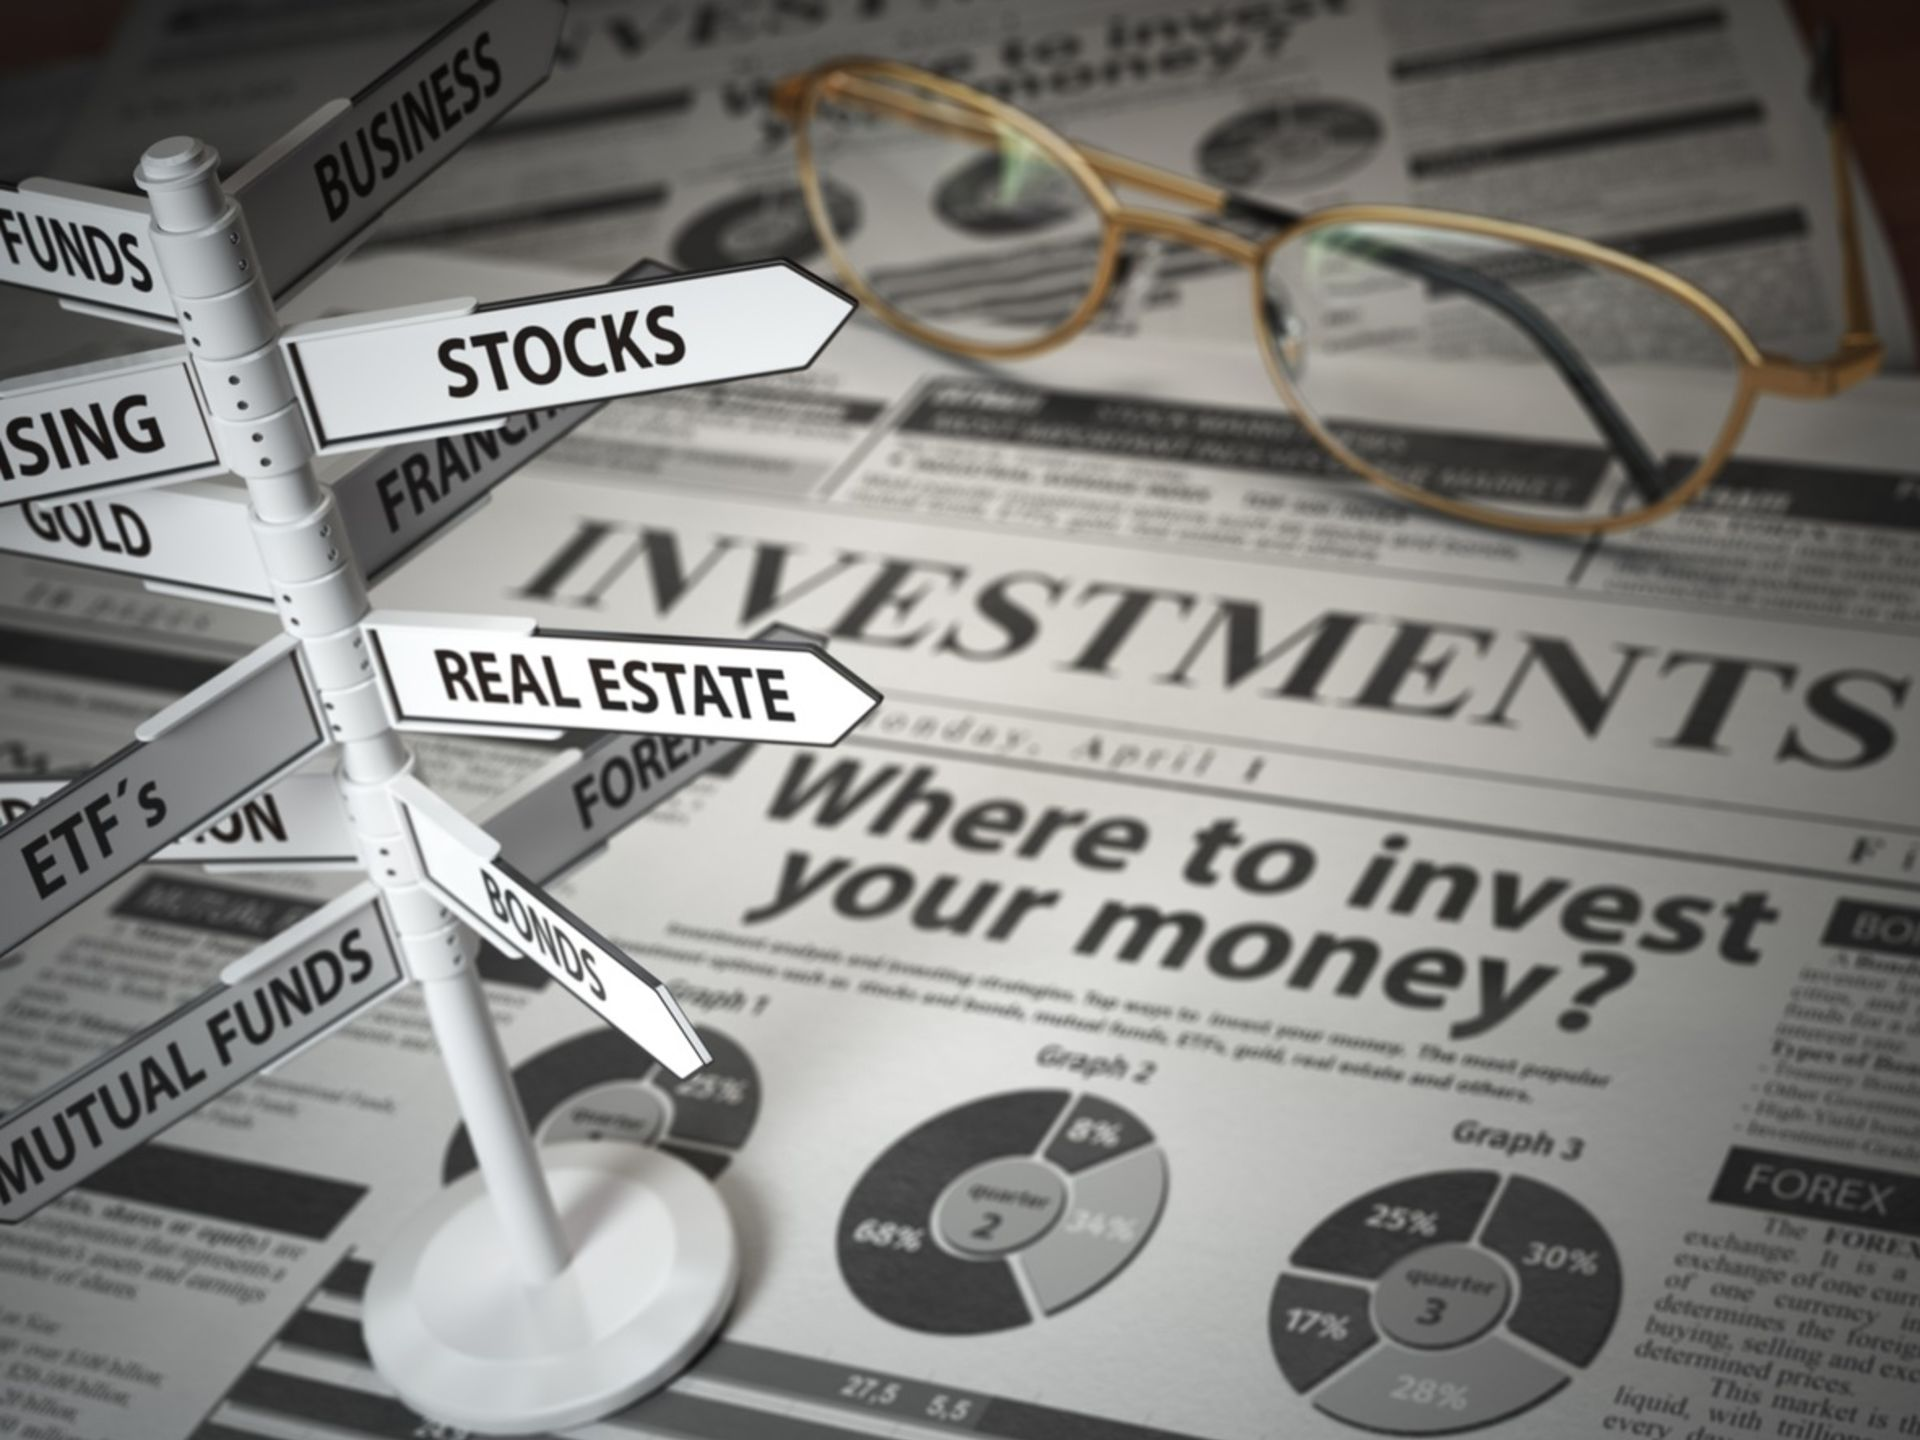 How Does Real Estate Investment Compare to Other Assets?